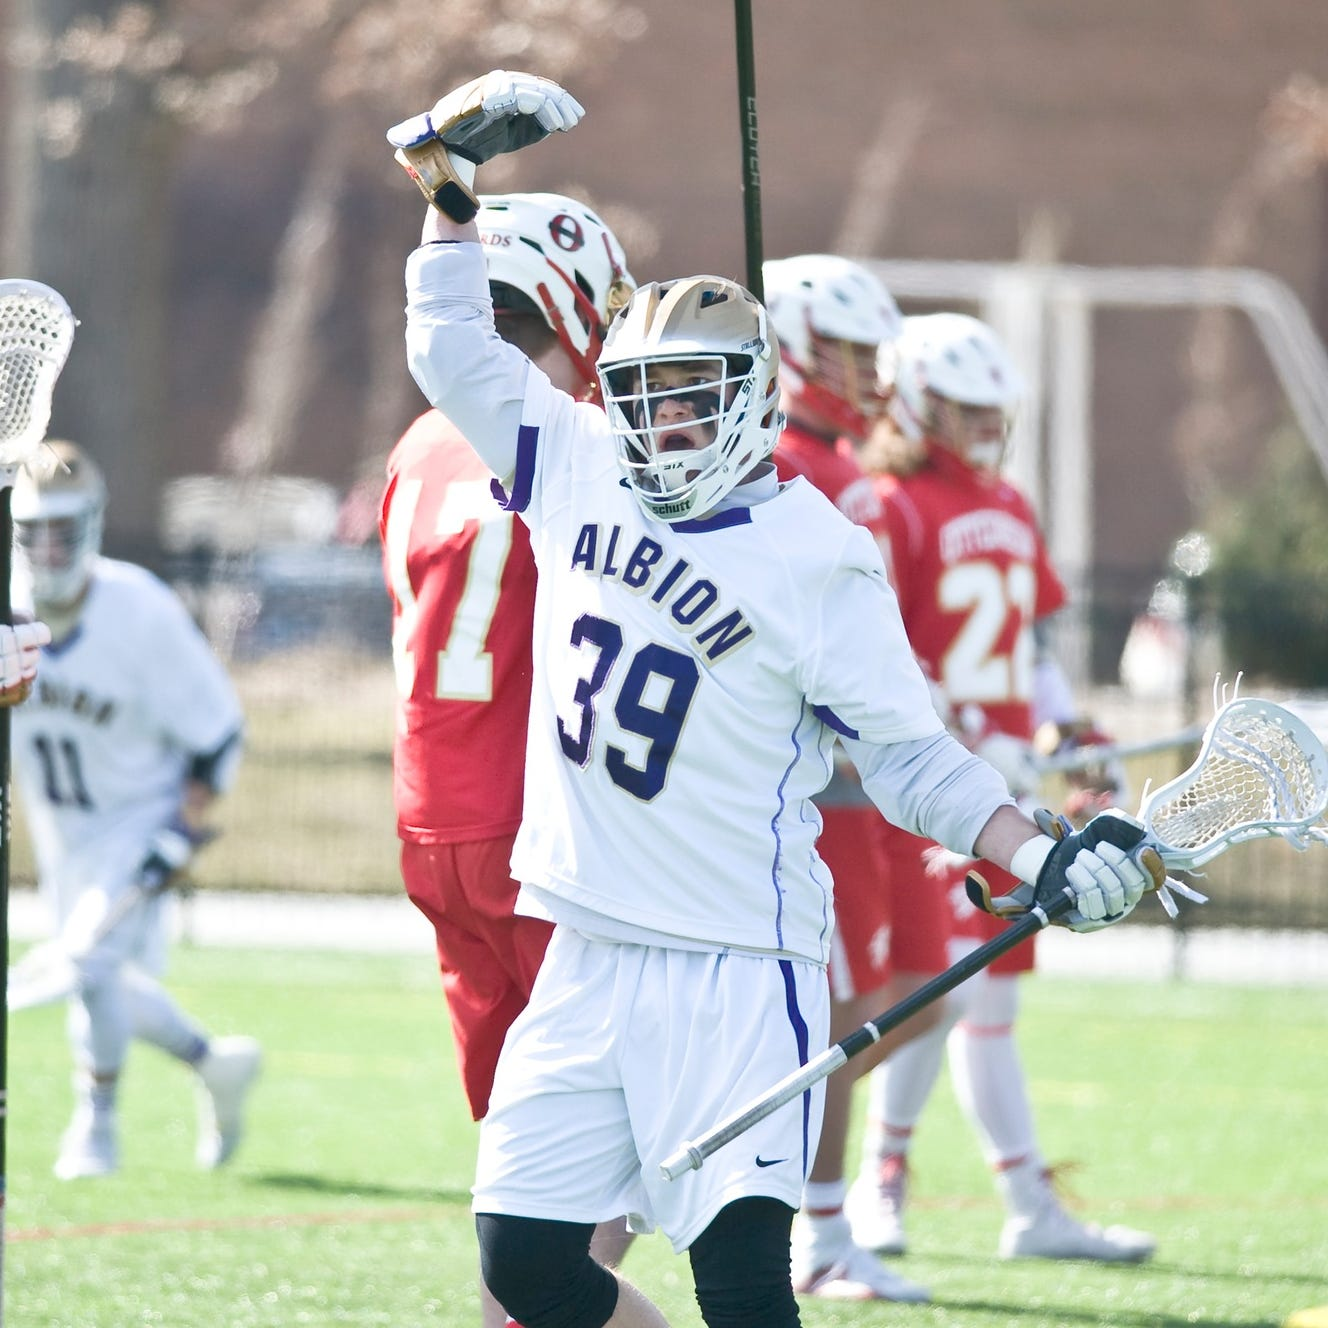 'Unstoppable' Albion College lacrosse player's toughest foe: A brain tumor